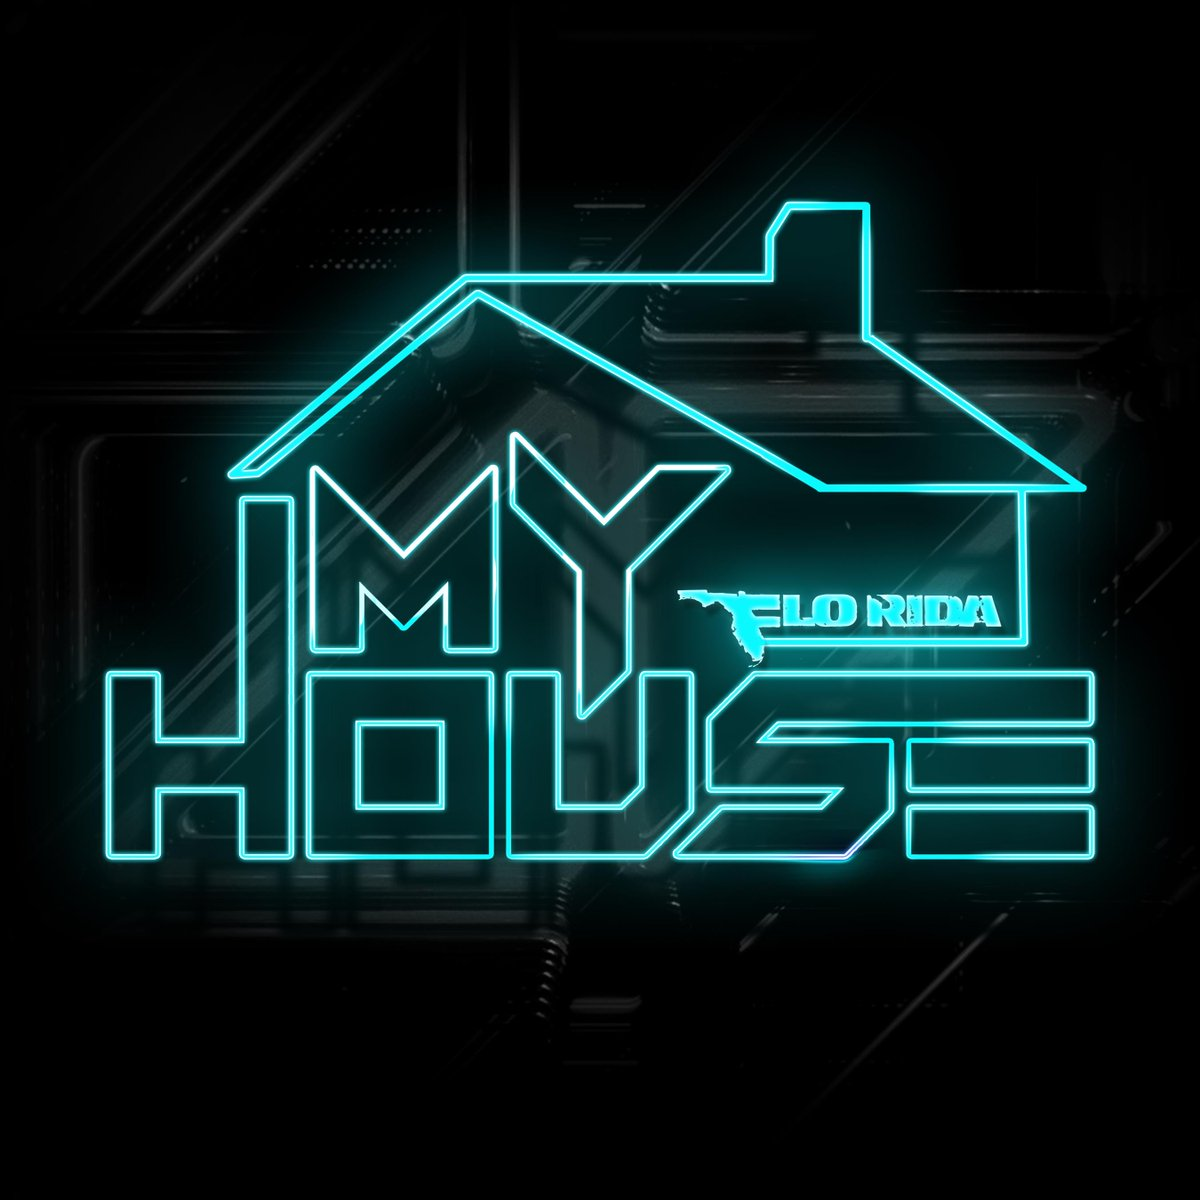 Get @official_flo's EP #MyHouse on iTunes NOW! : http://t.co/wcd4do6g6U http://t.co/CU8uSykKgu